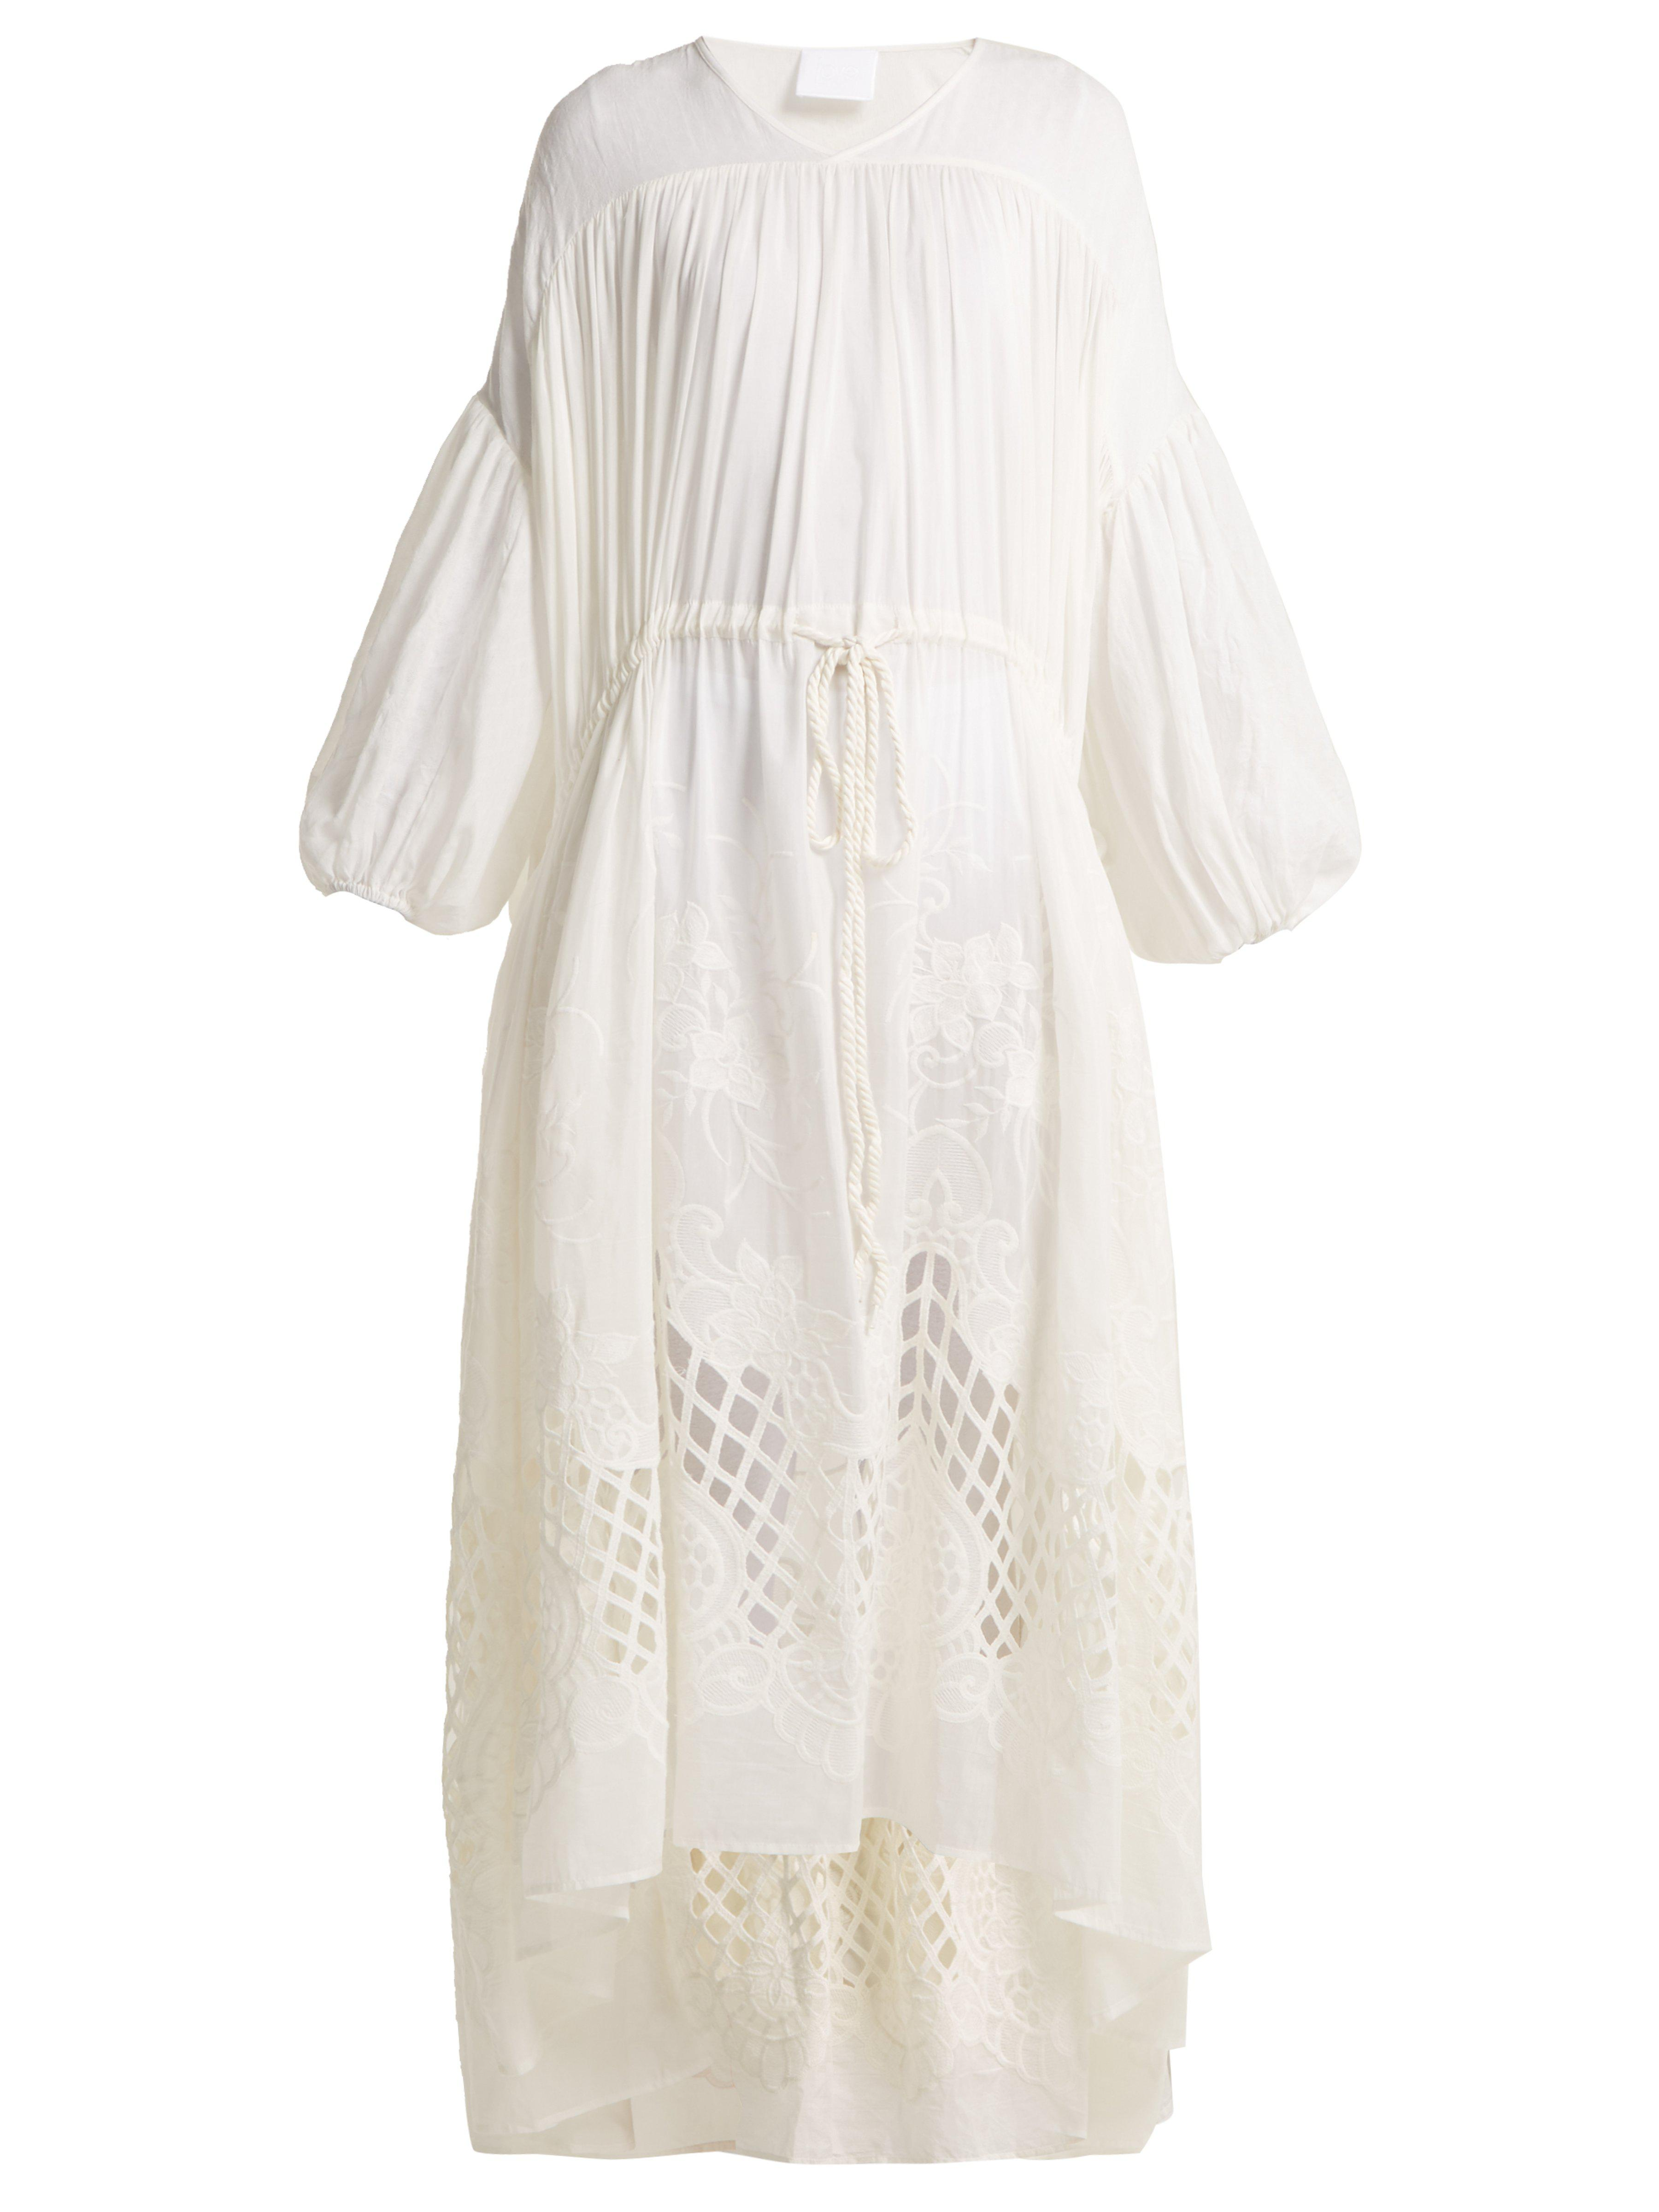 d2b7ef854a95 love-binetti-white-Guipure-Lace-Cotton-Dress.jpeg